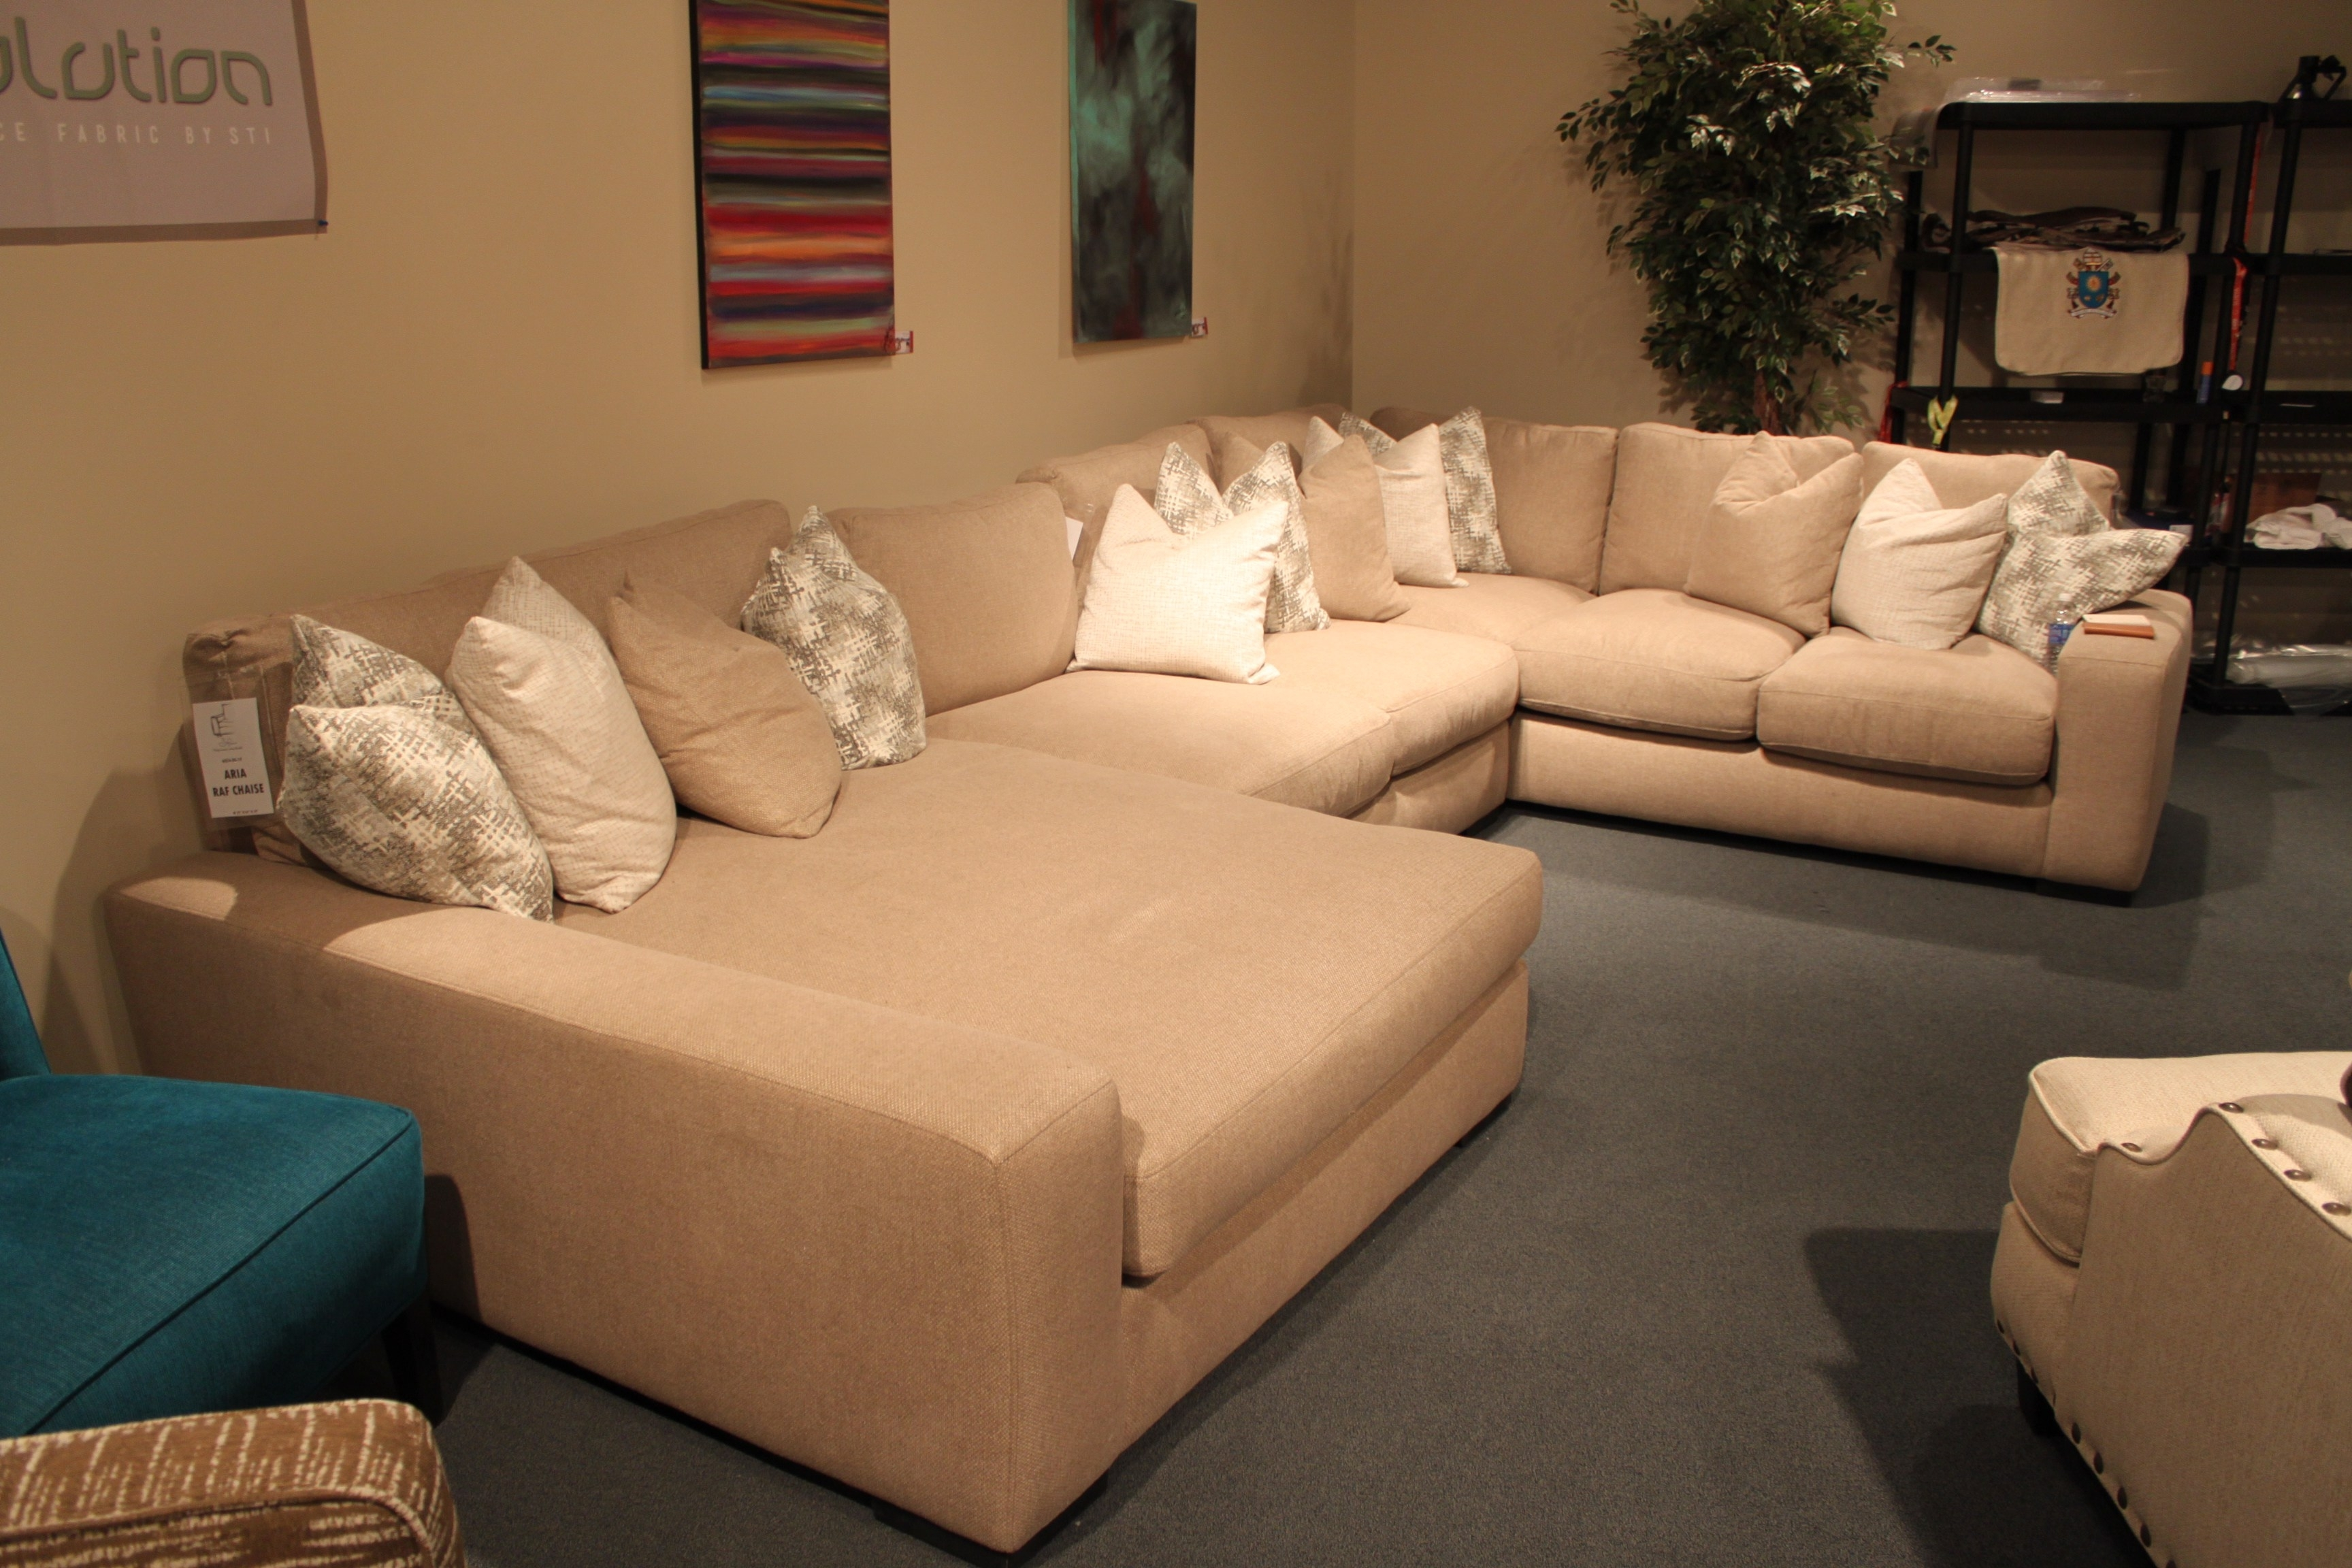 Ventura Furniture Stores - Home Design Ideas And Pictures intended for Ventura County Sectional Sofas (Image 10 of 10)